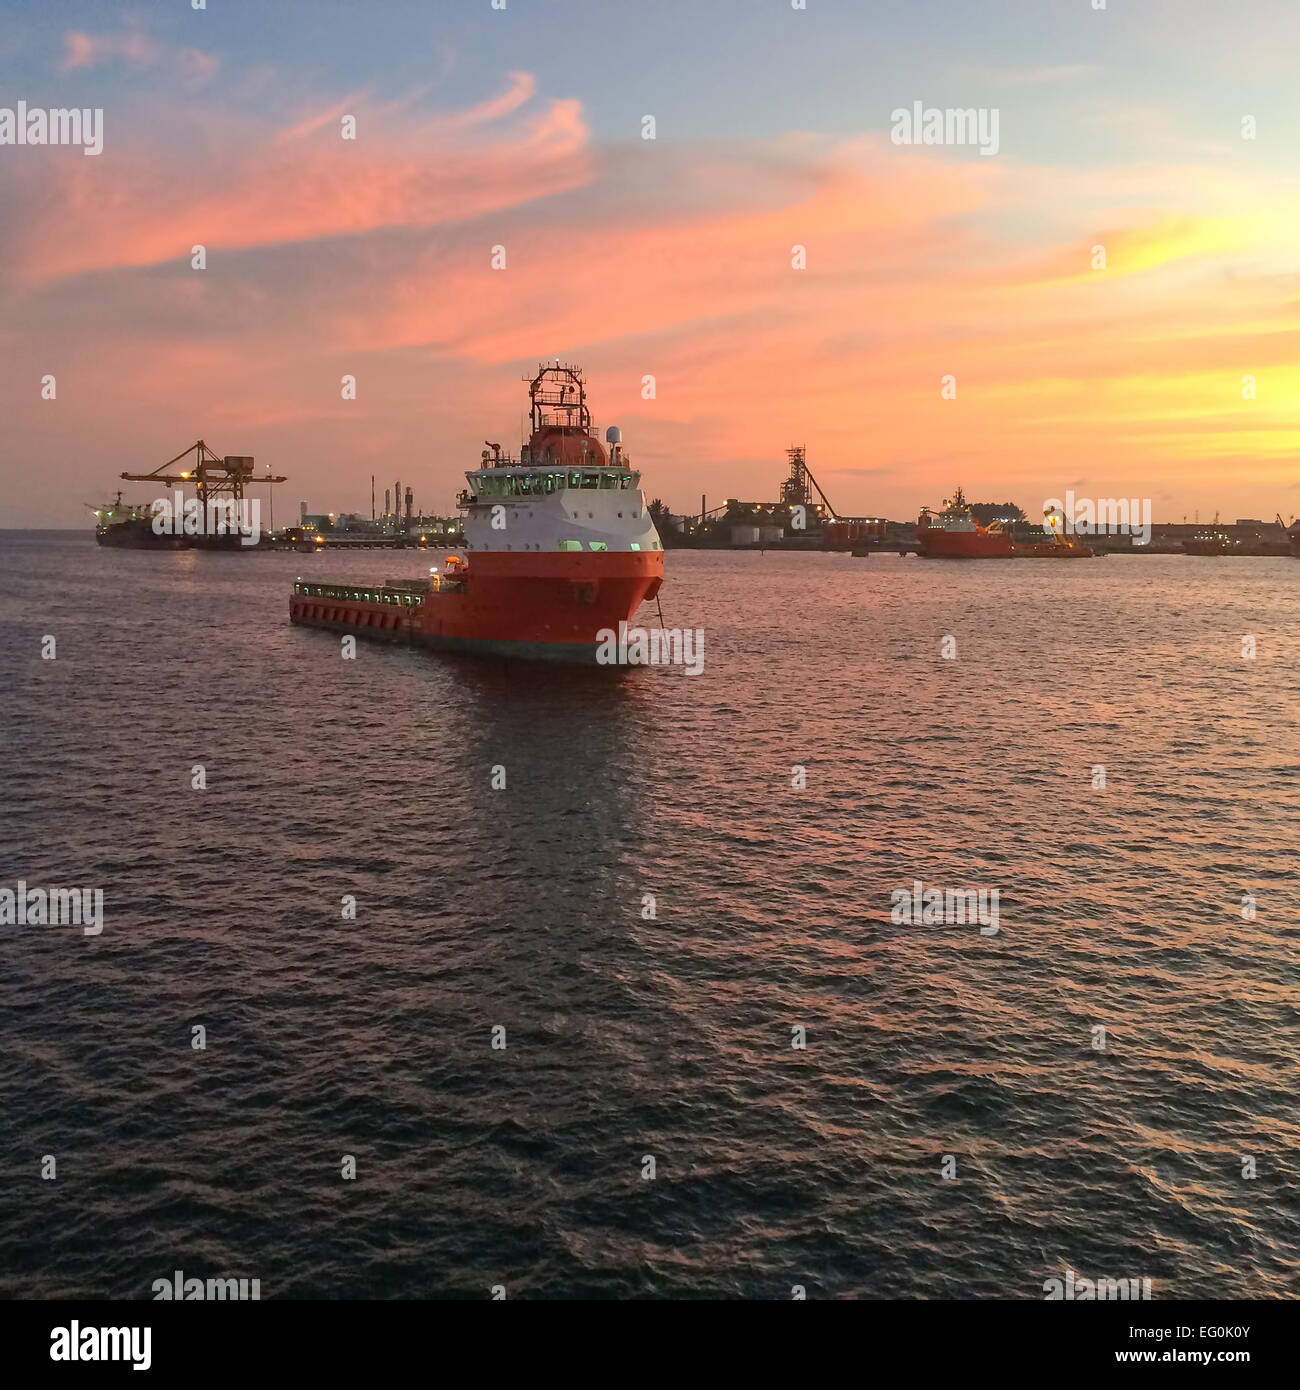 Oil rig support vessel anchored in port harbor at sunset - Stock Image